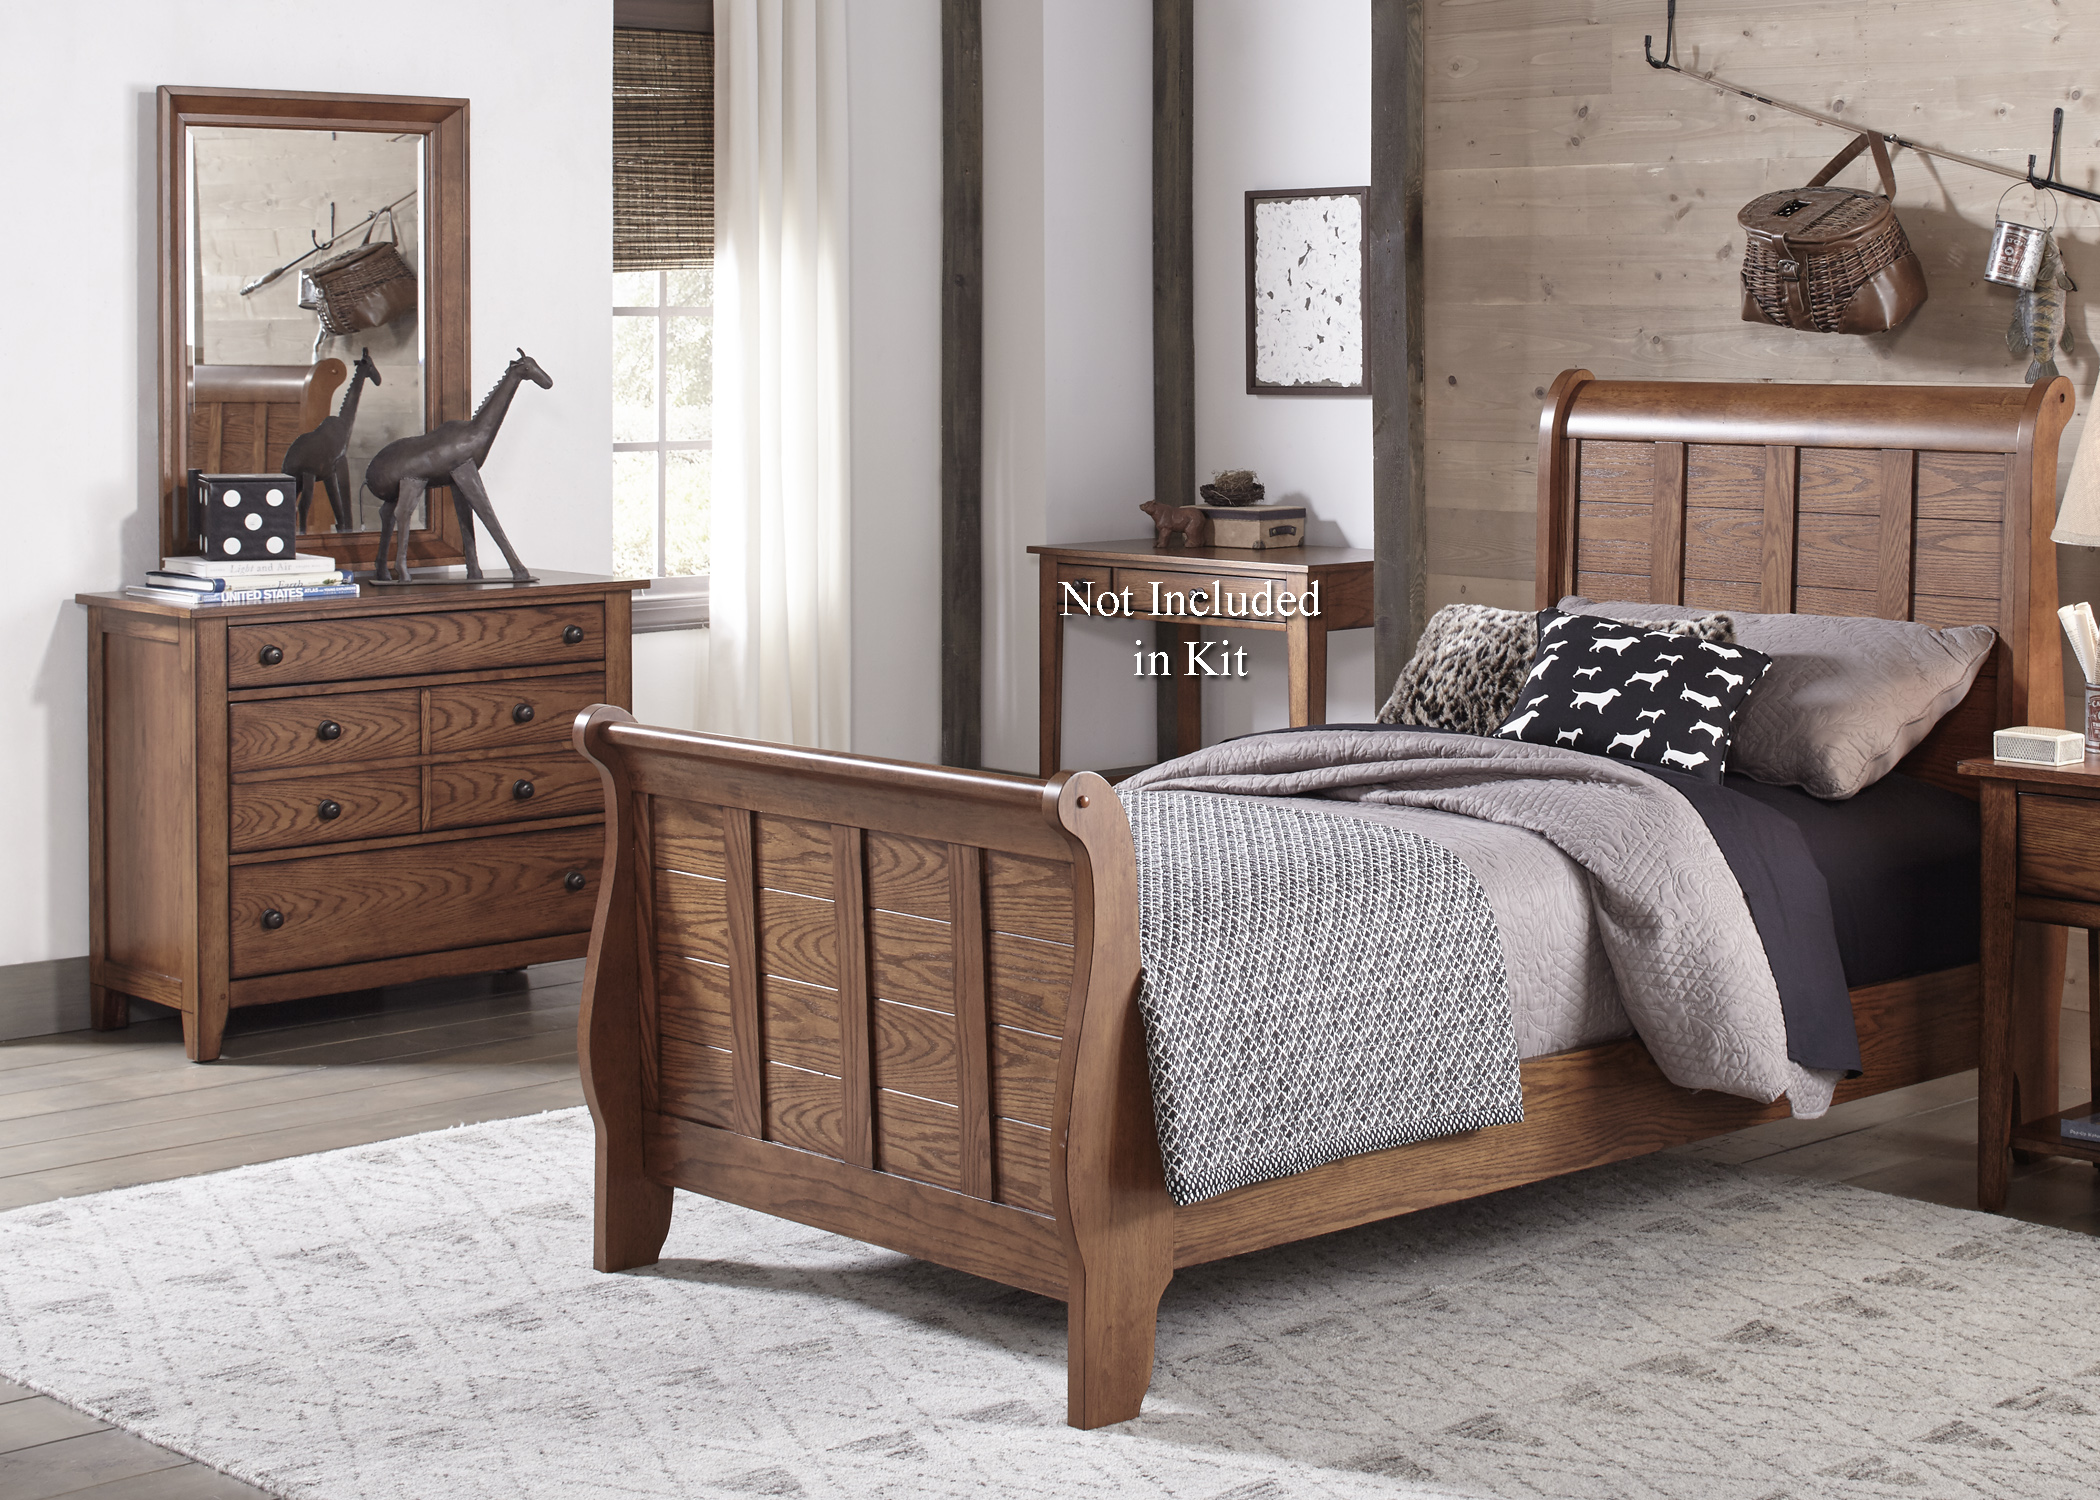 Grandpa's Cabin Twin Sleigh Bed, Dresser & Mirror by Liberty Furniture at Northeast Factory Direct